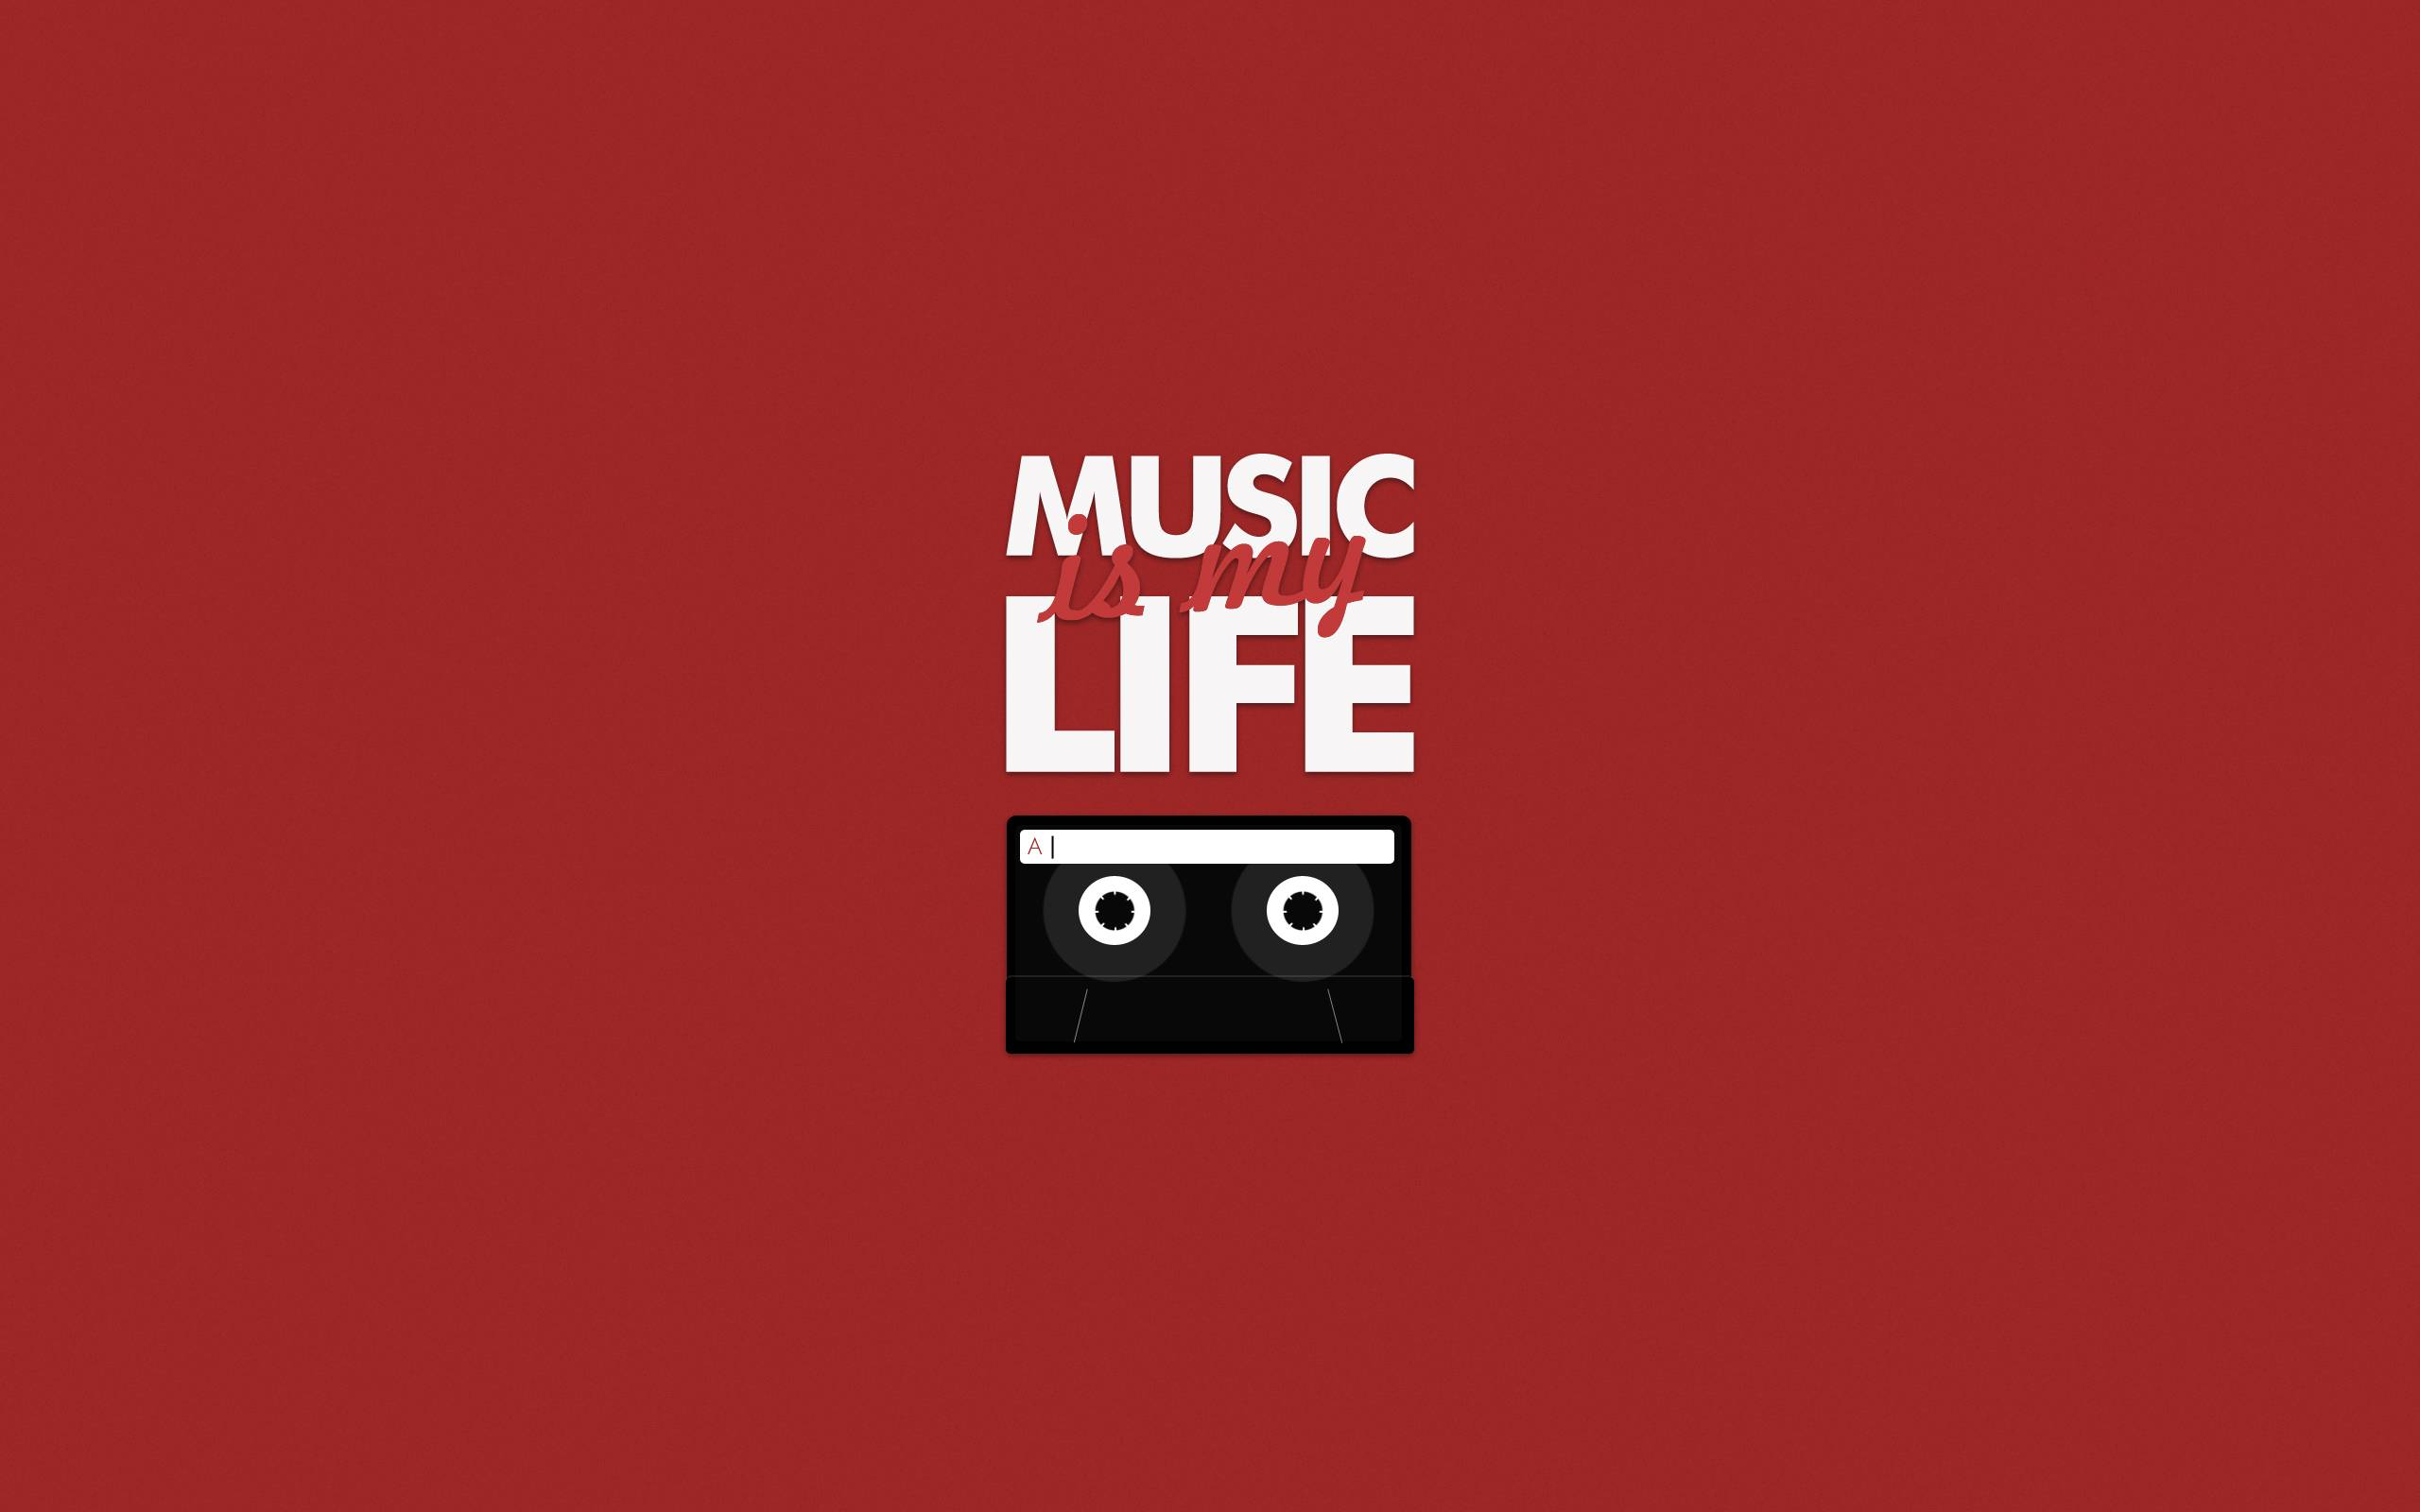 Music Is My Life Wallpapers Wallpaper Cave HD Wallpapers Download Free Images Wallpaper [1000image.com]